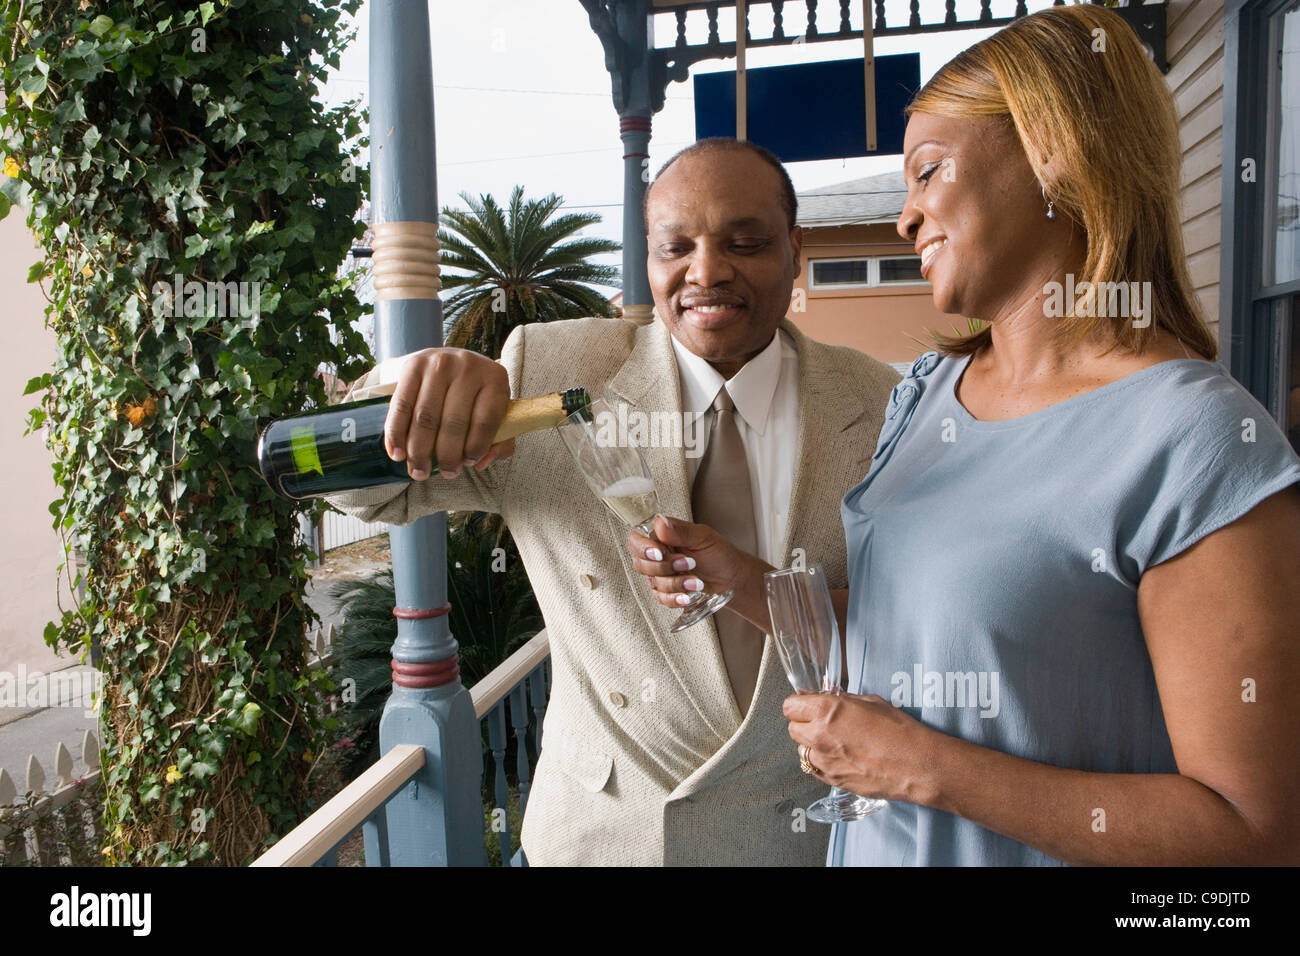 View of a mature couple celebrating with champagne - Stock Image